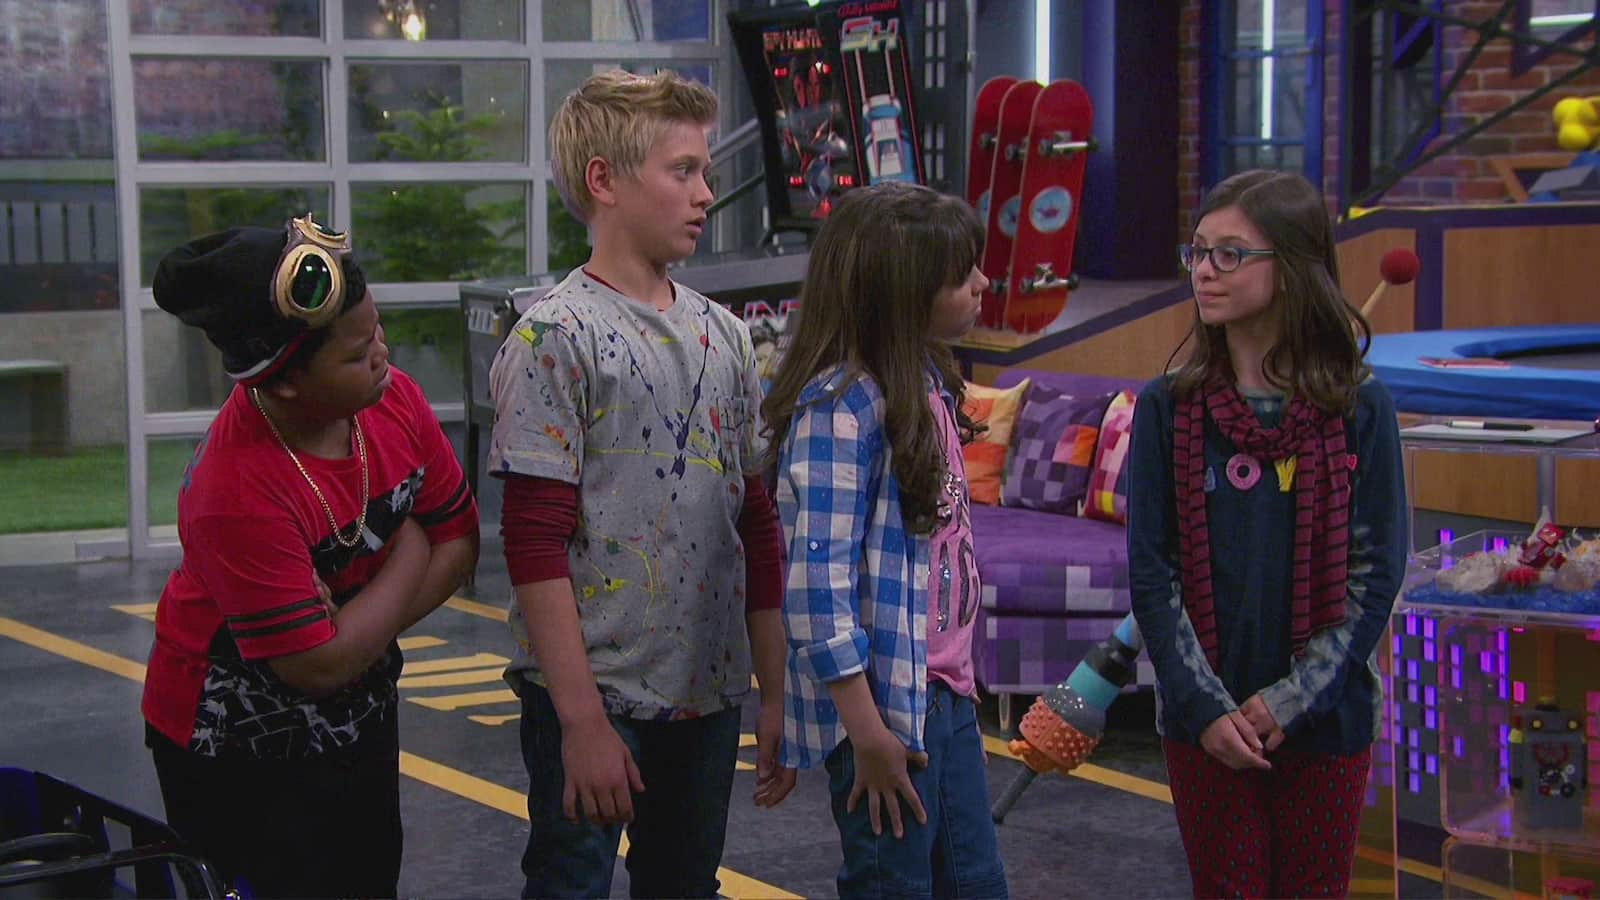 game-shakers/sasong-1/avsnitt-4